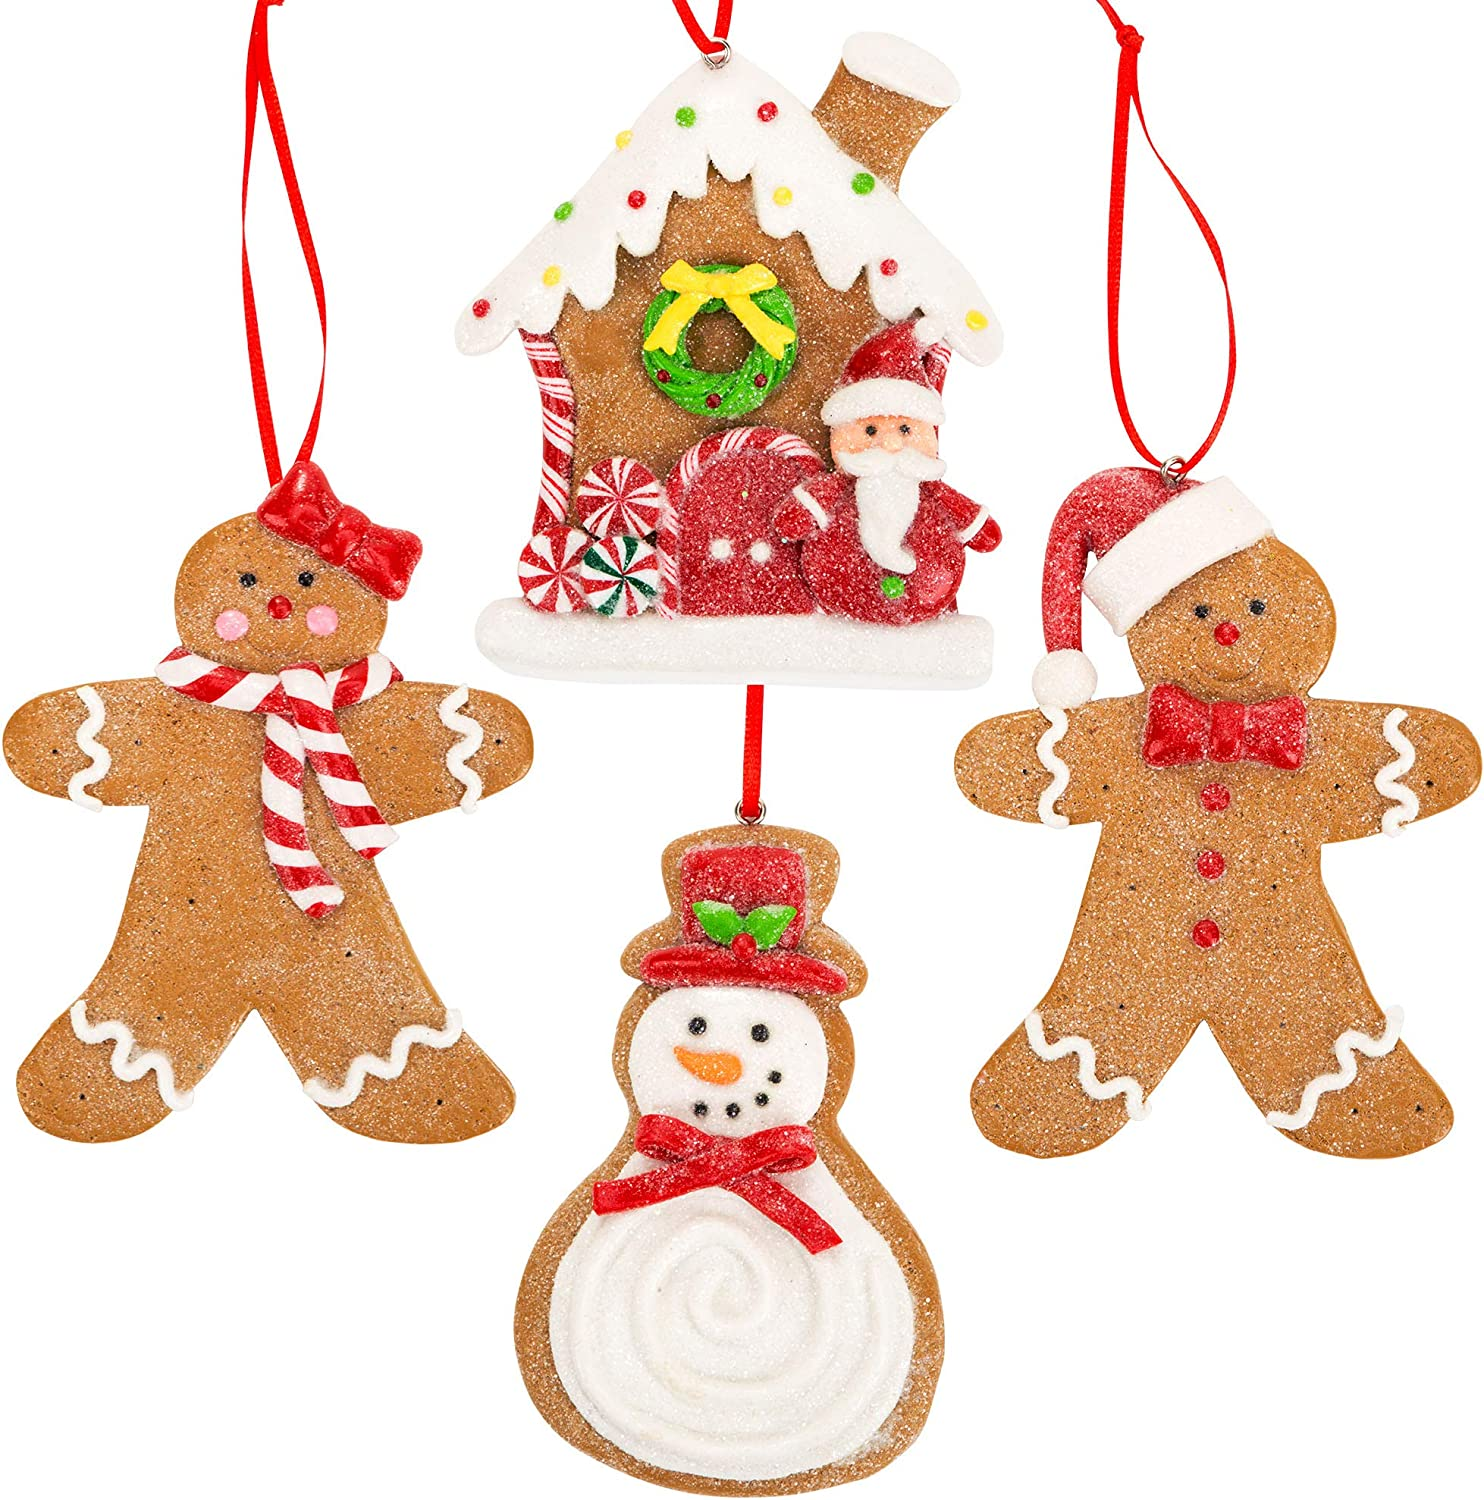 Gingerbread Christmas Ornaments - Man Boy Girl Gingerbread House Snowman Cookie Rustic Christmas Decorations Set of 4 - Claydough Christmas Tree Decorations - Christmas Tree Ornaments With Gift Box